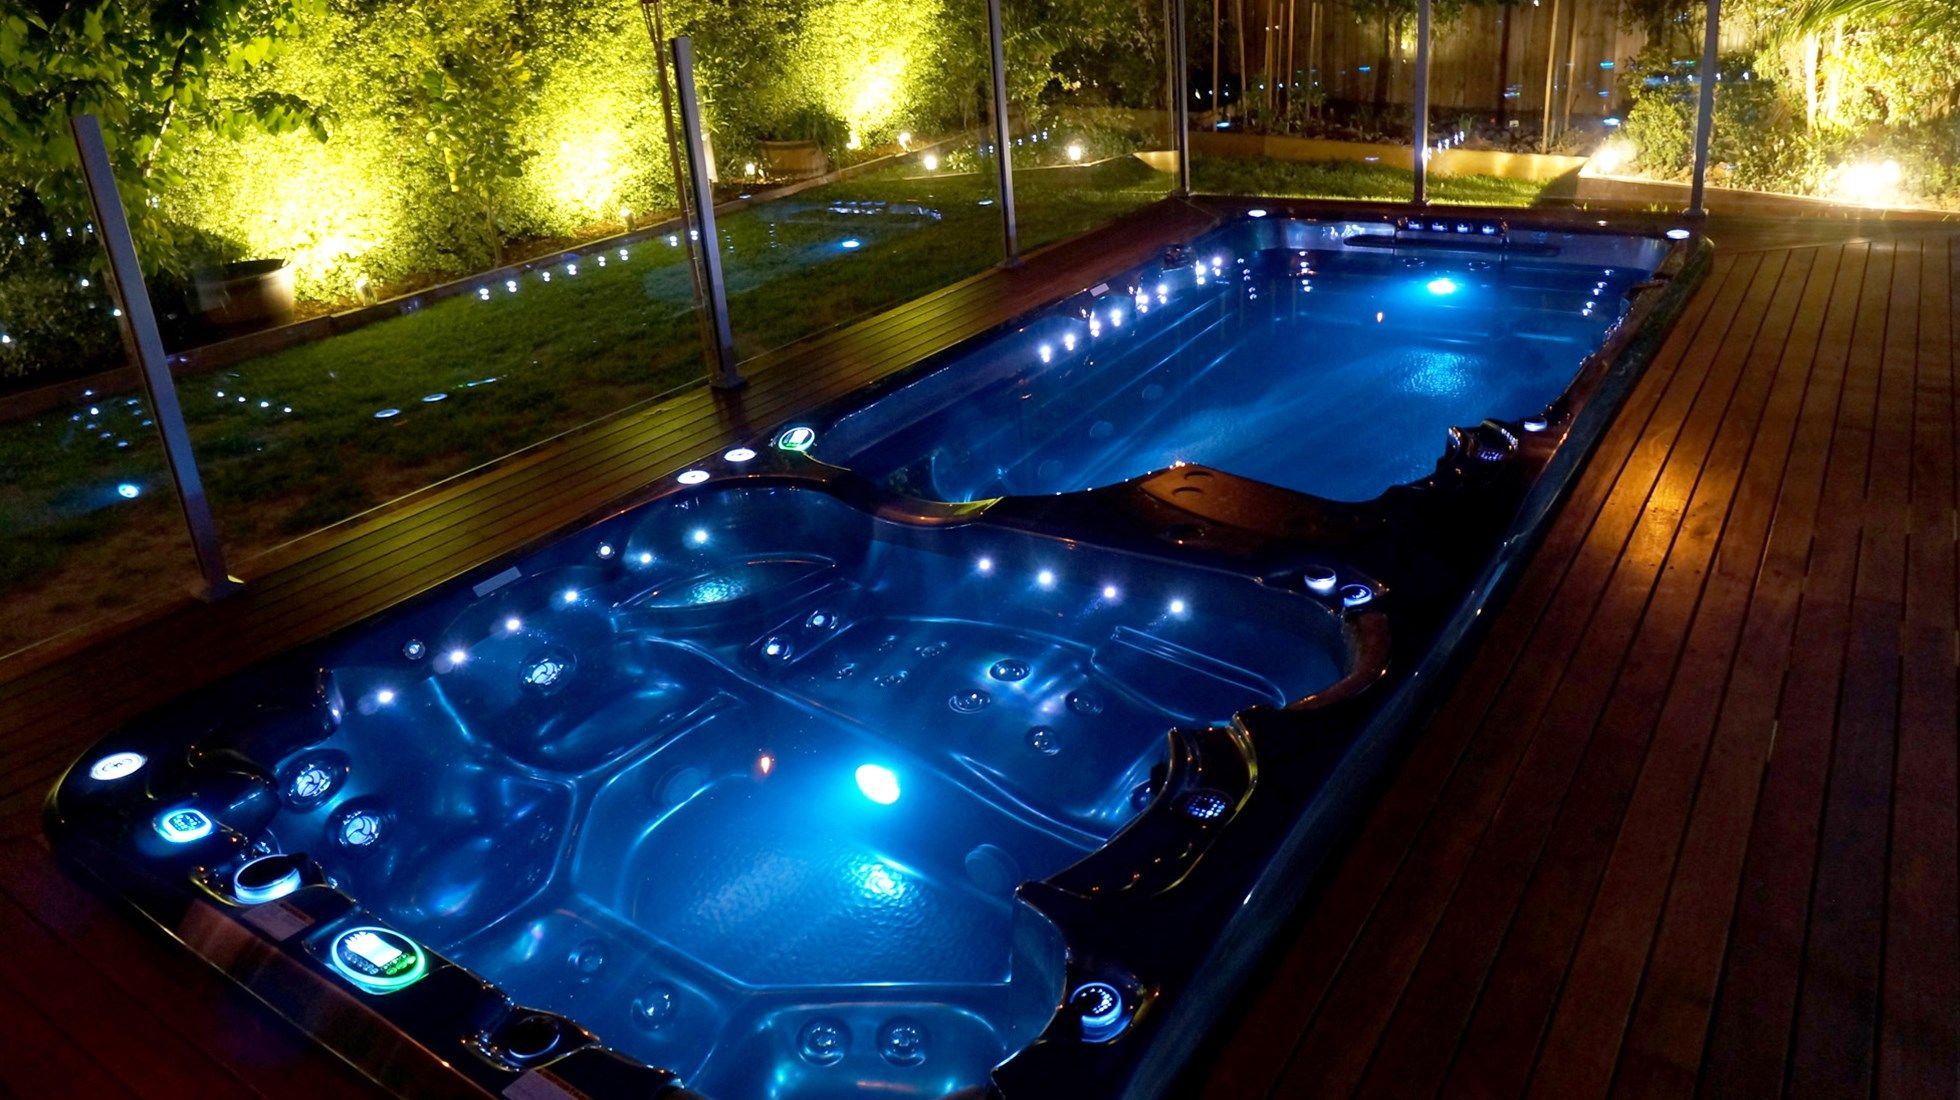 Pictures And Images Of Outdoor Spas Gazebos And Swim Spas Taken In Australia New Zealand France And The Uk Spa Pool Swim Spa Outdoor Spa